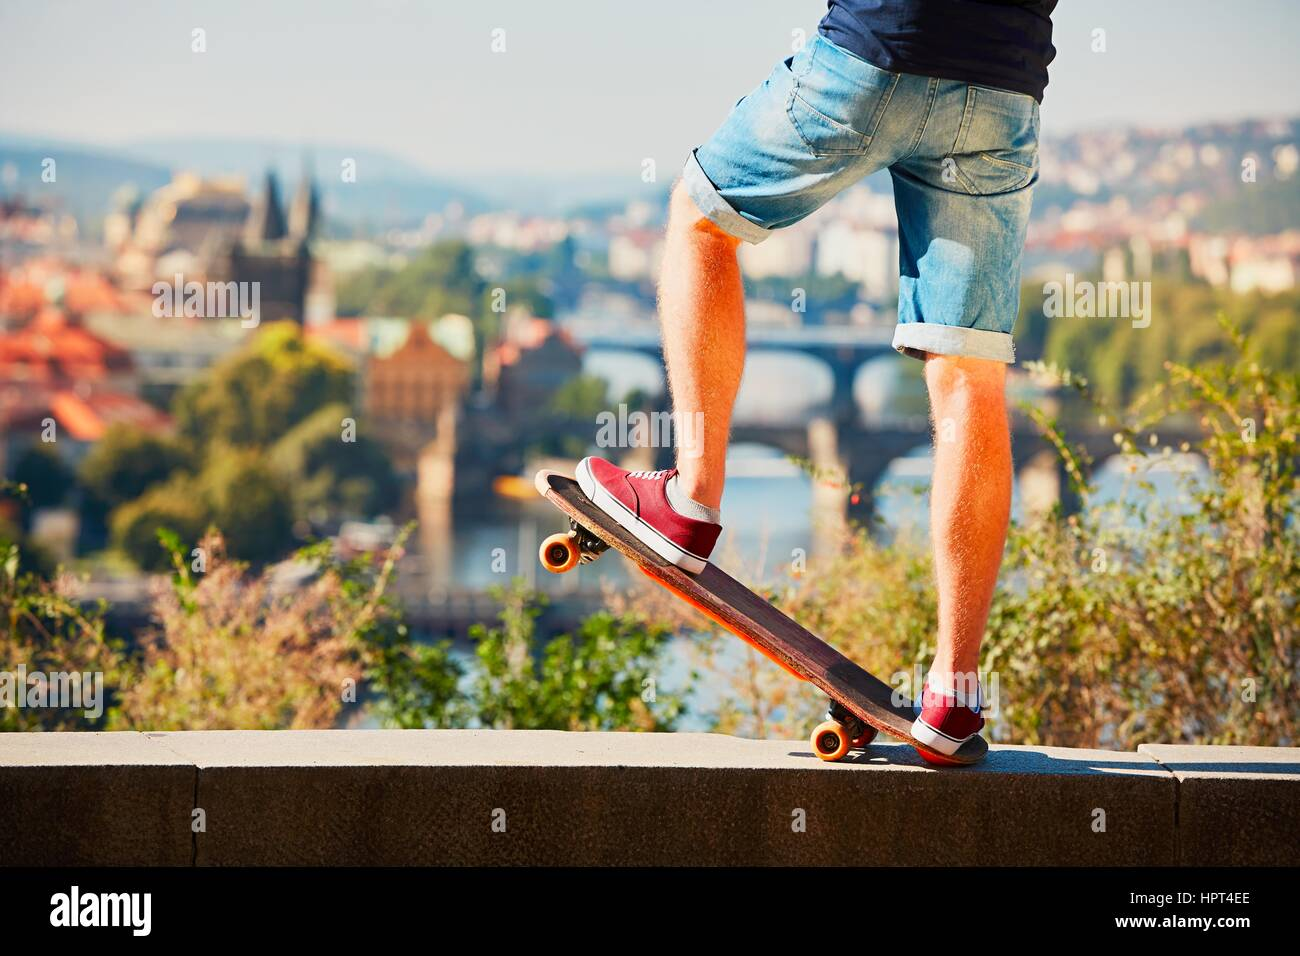 Young skateboarder is riding on the skateboard in the city. Prague, Czech Republic. - Stock Image